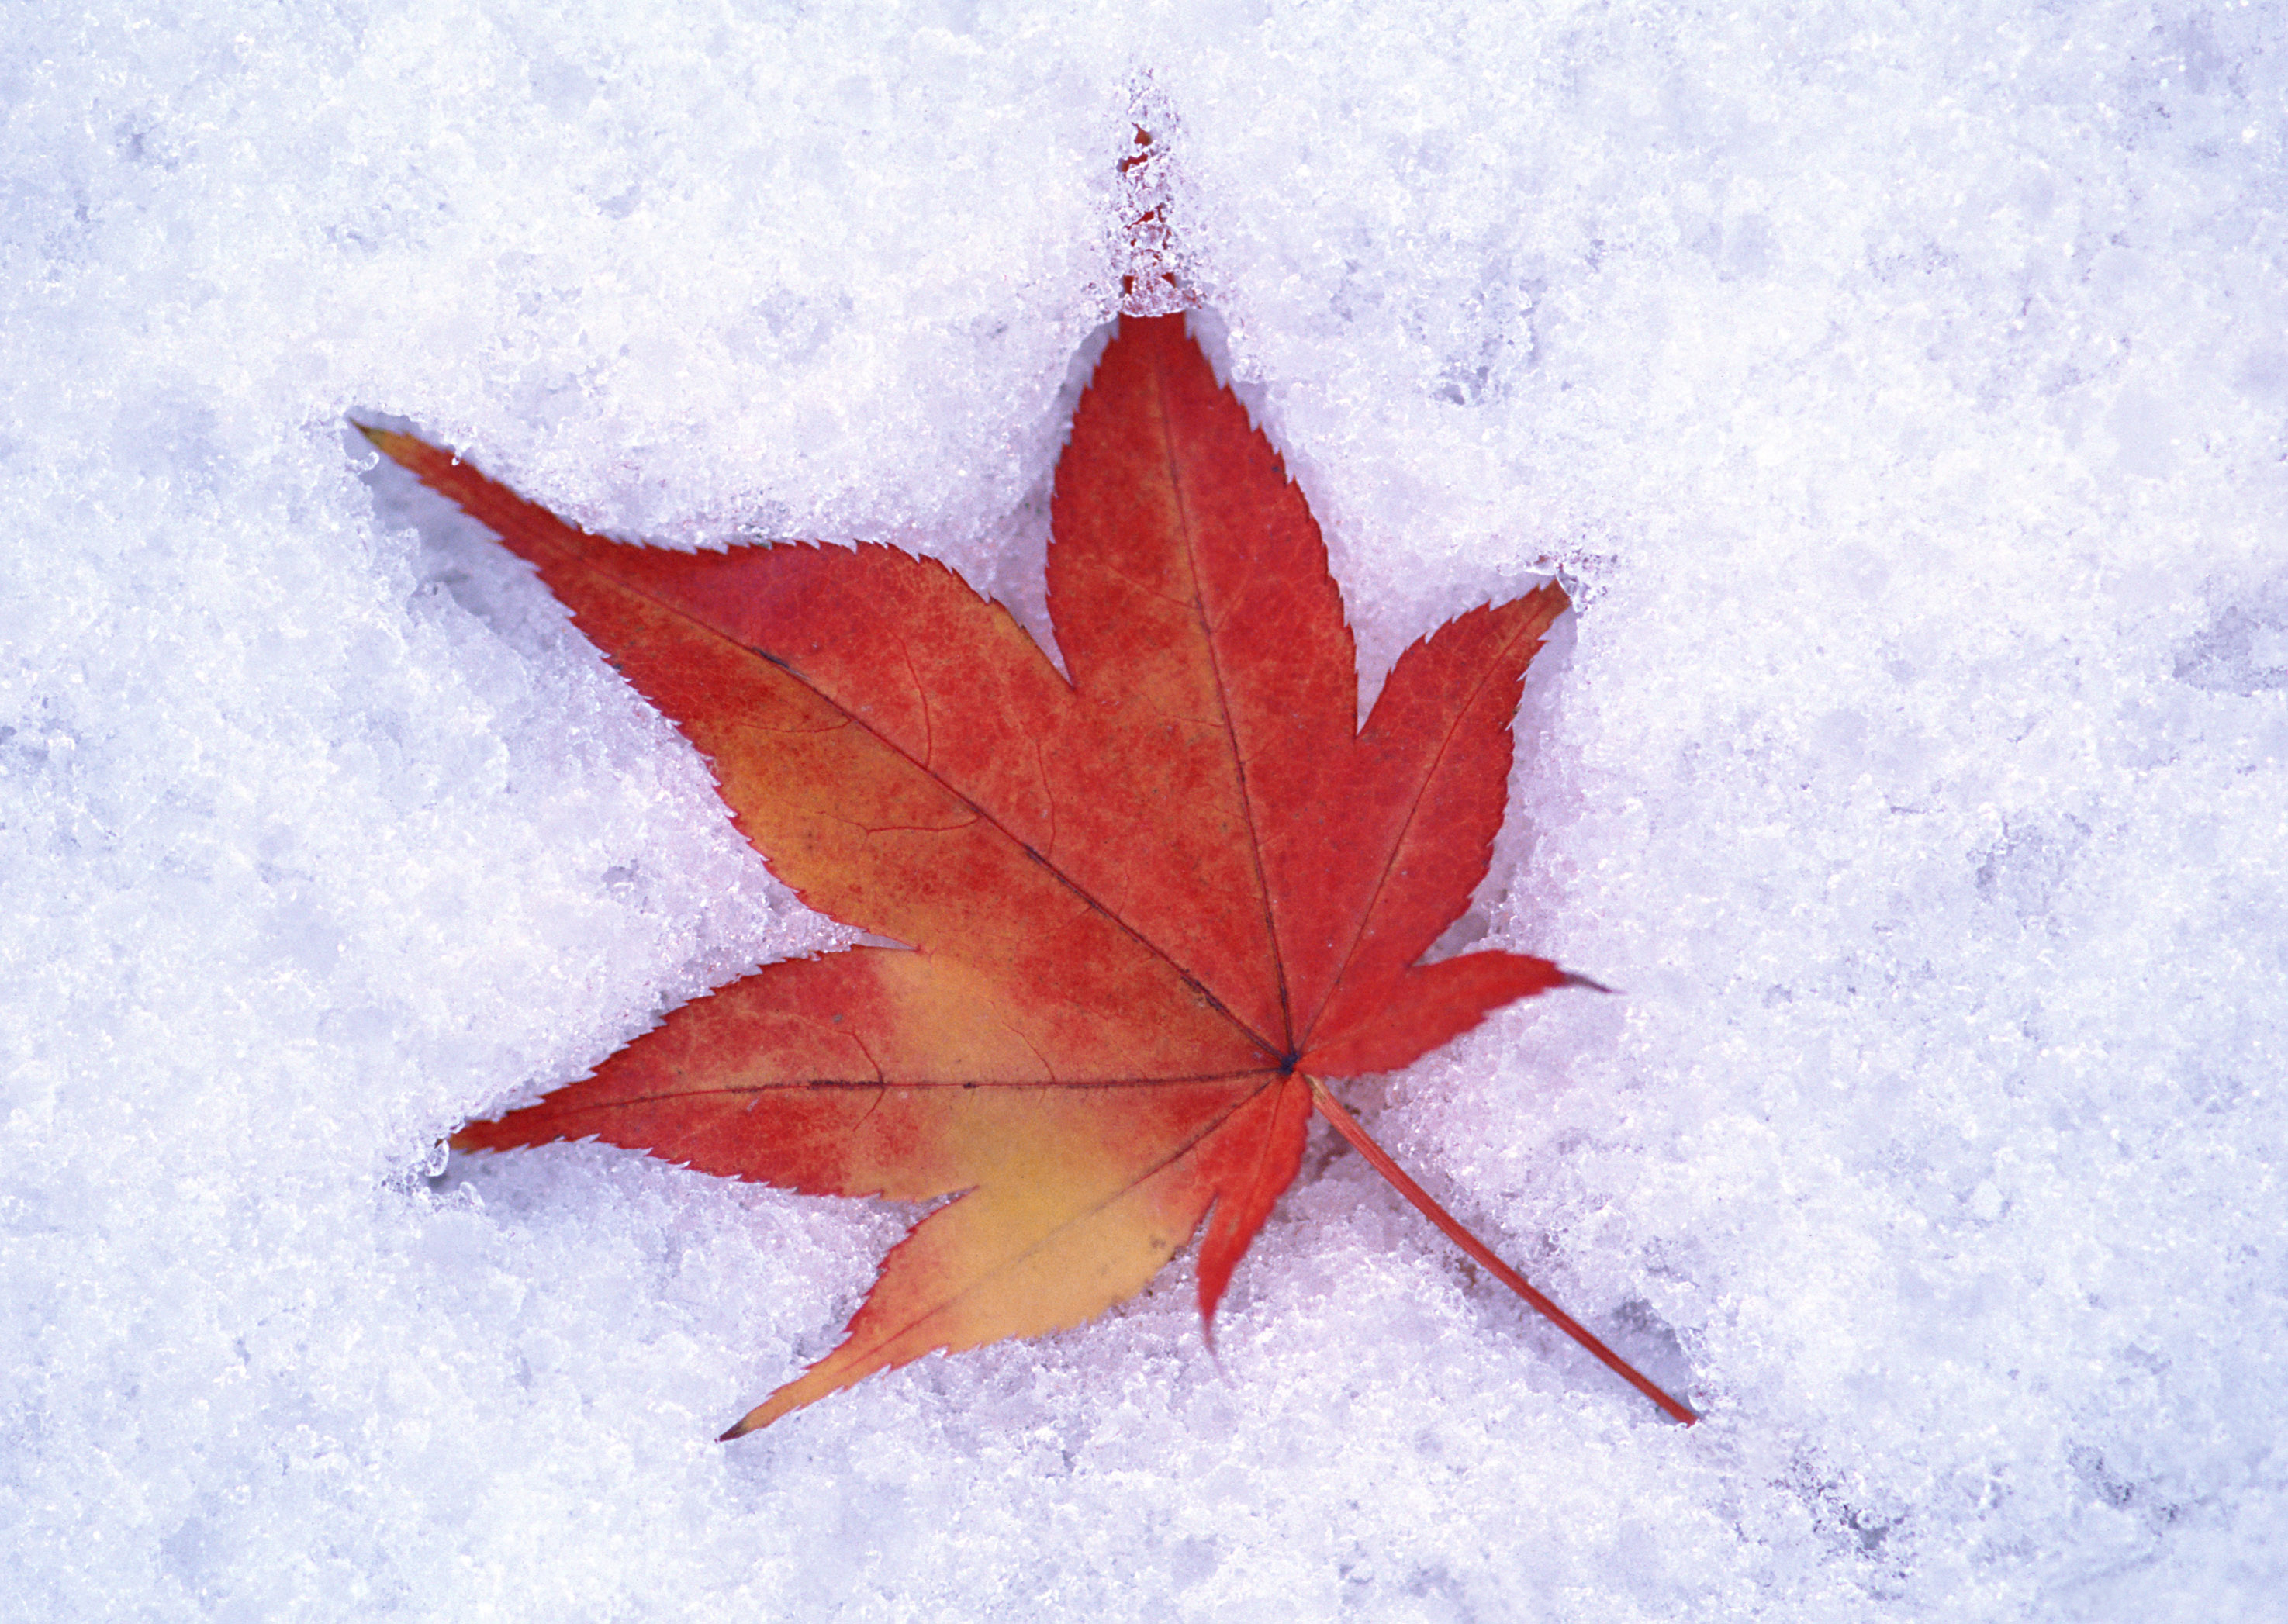 Autumn Leaf in the Snow Wallpaper | Gallery Yopriceville - High ...